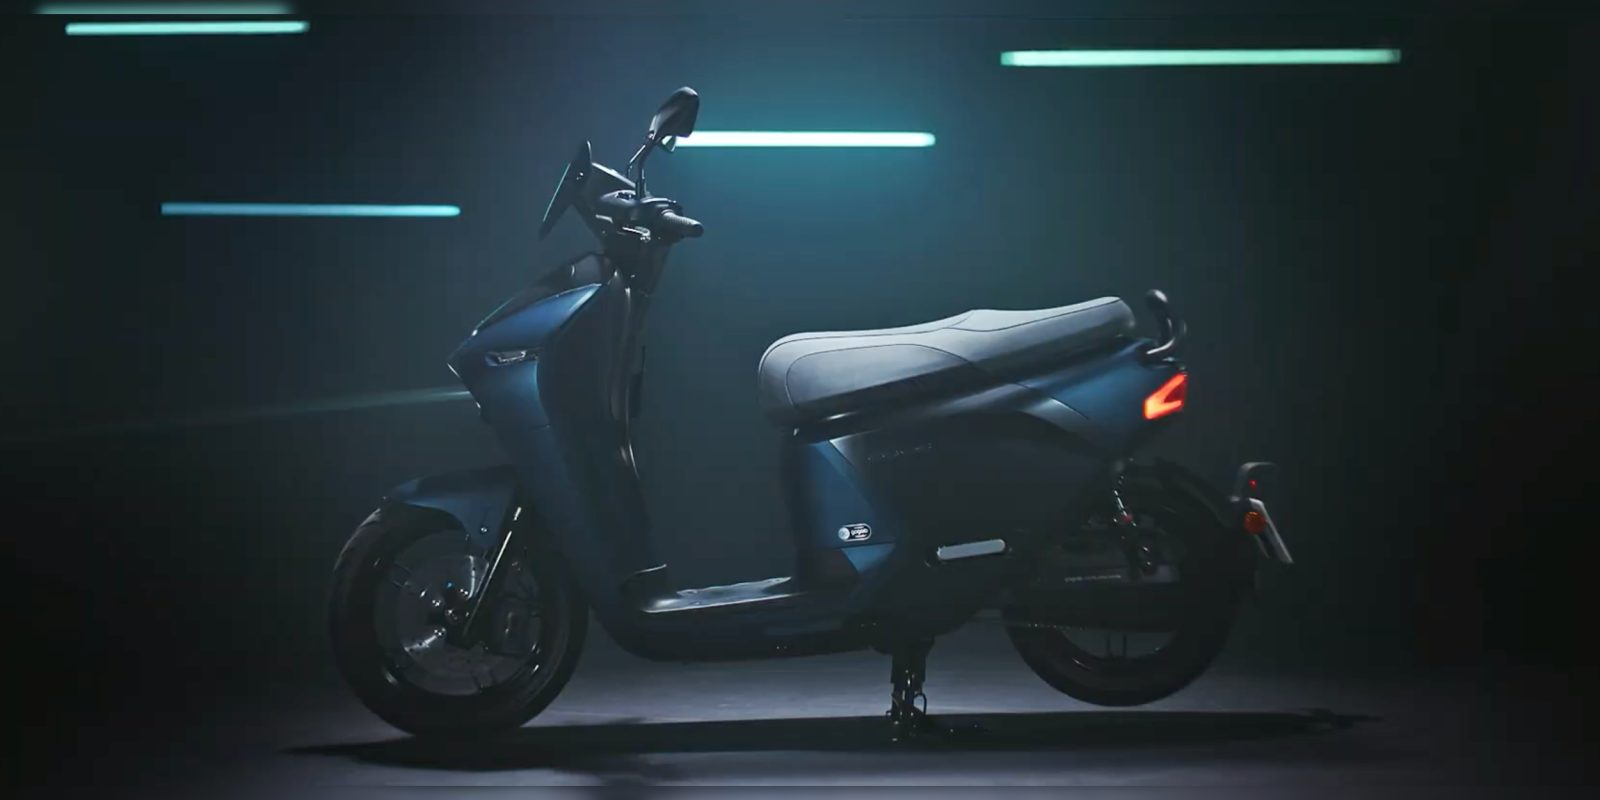 Yamaha unveils electric scooter with fast swapping Gogoro